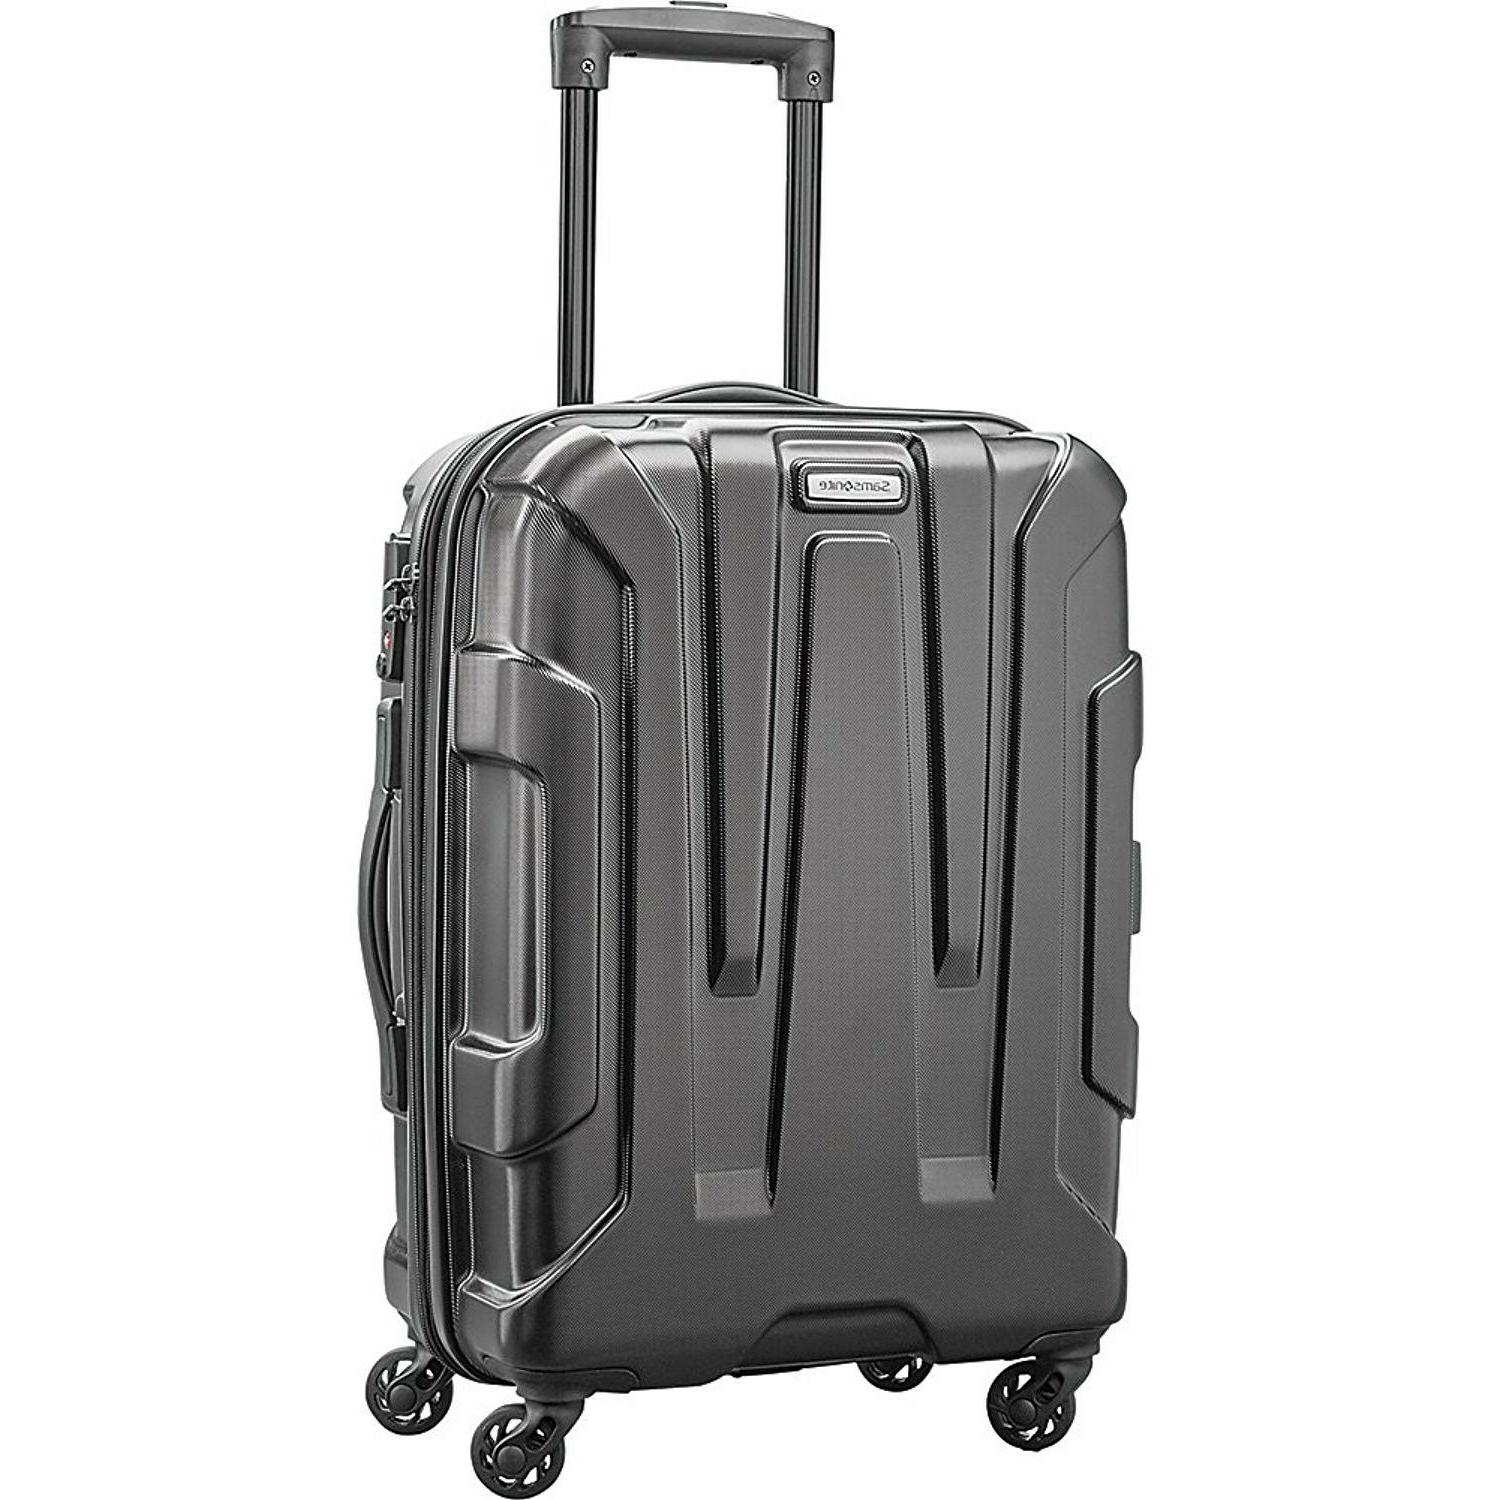 centric 28 hardside spinner luggage suitcase choose